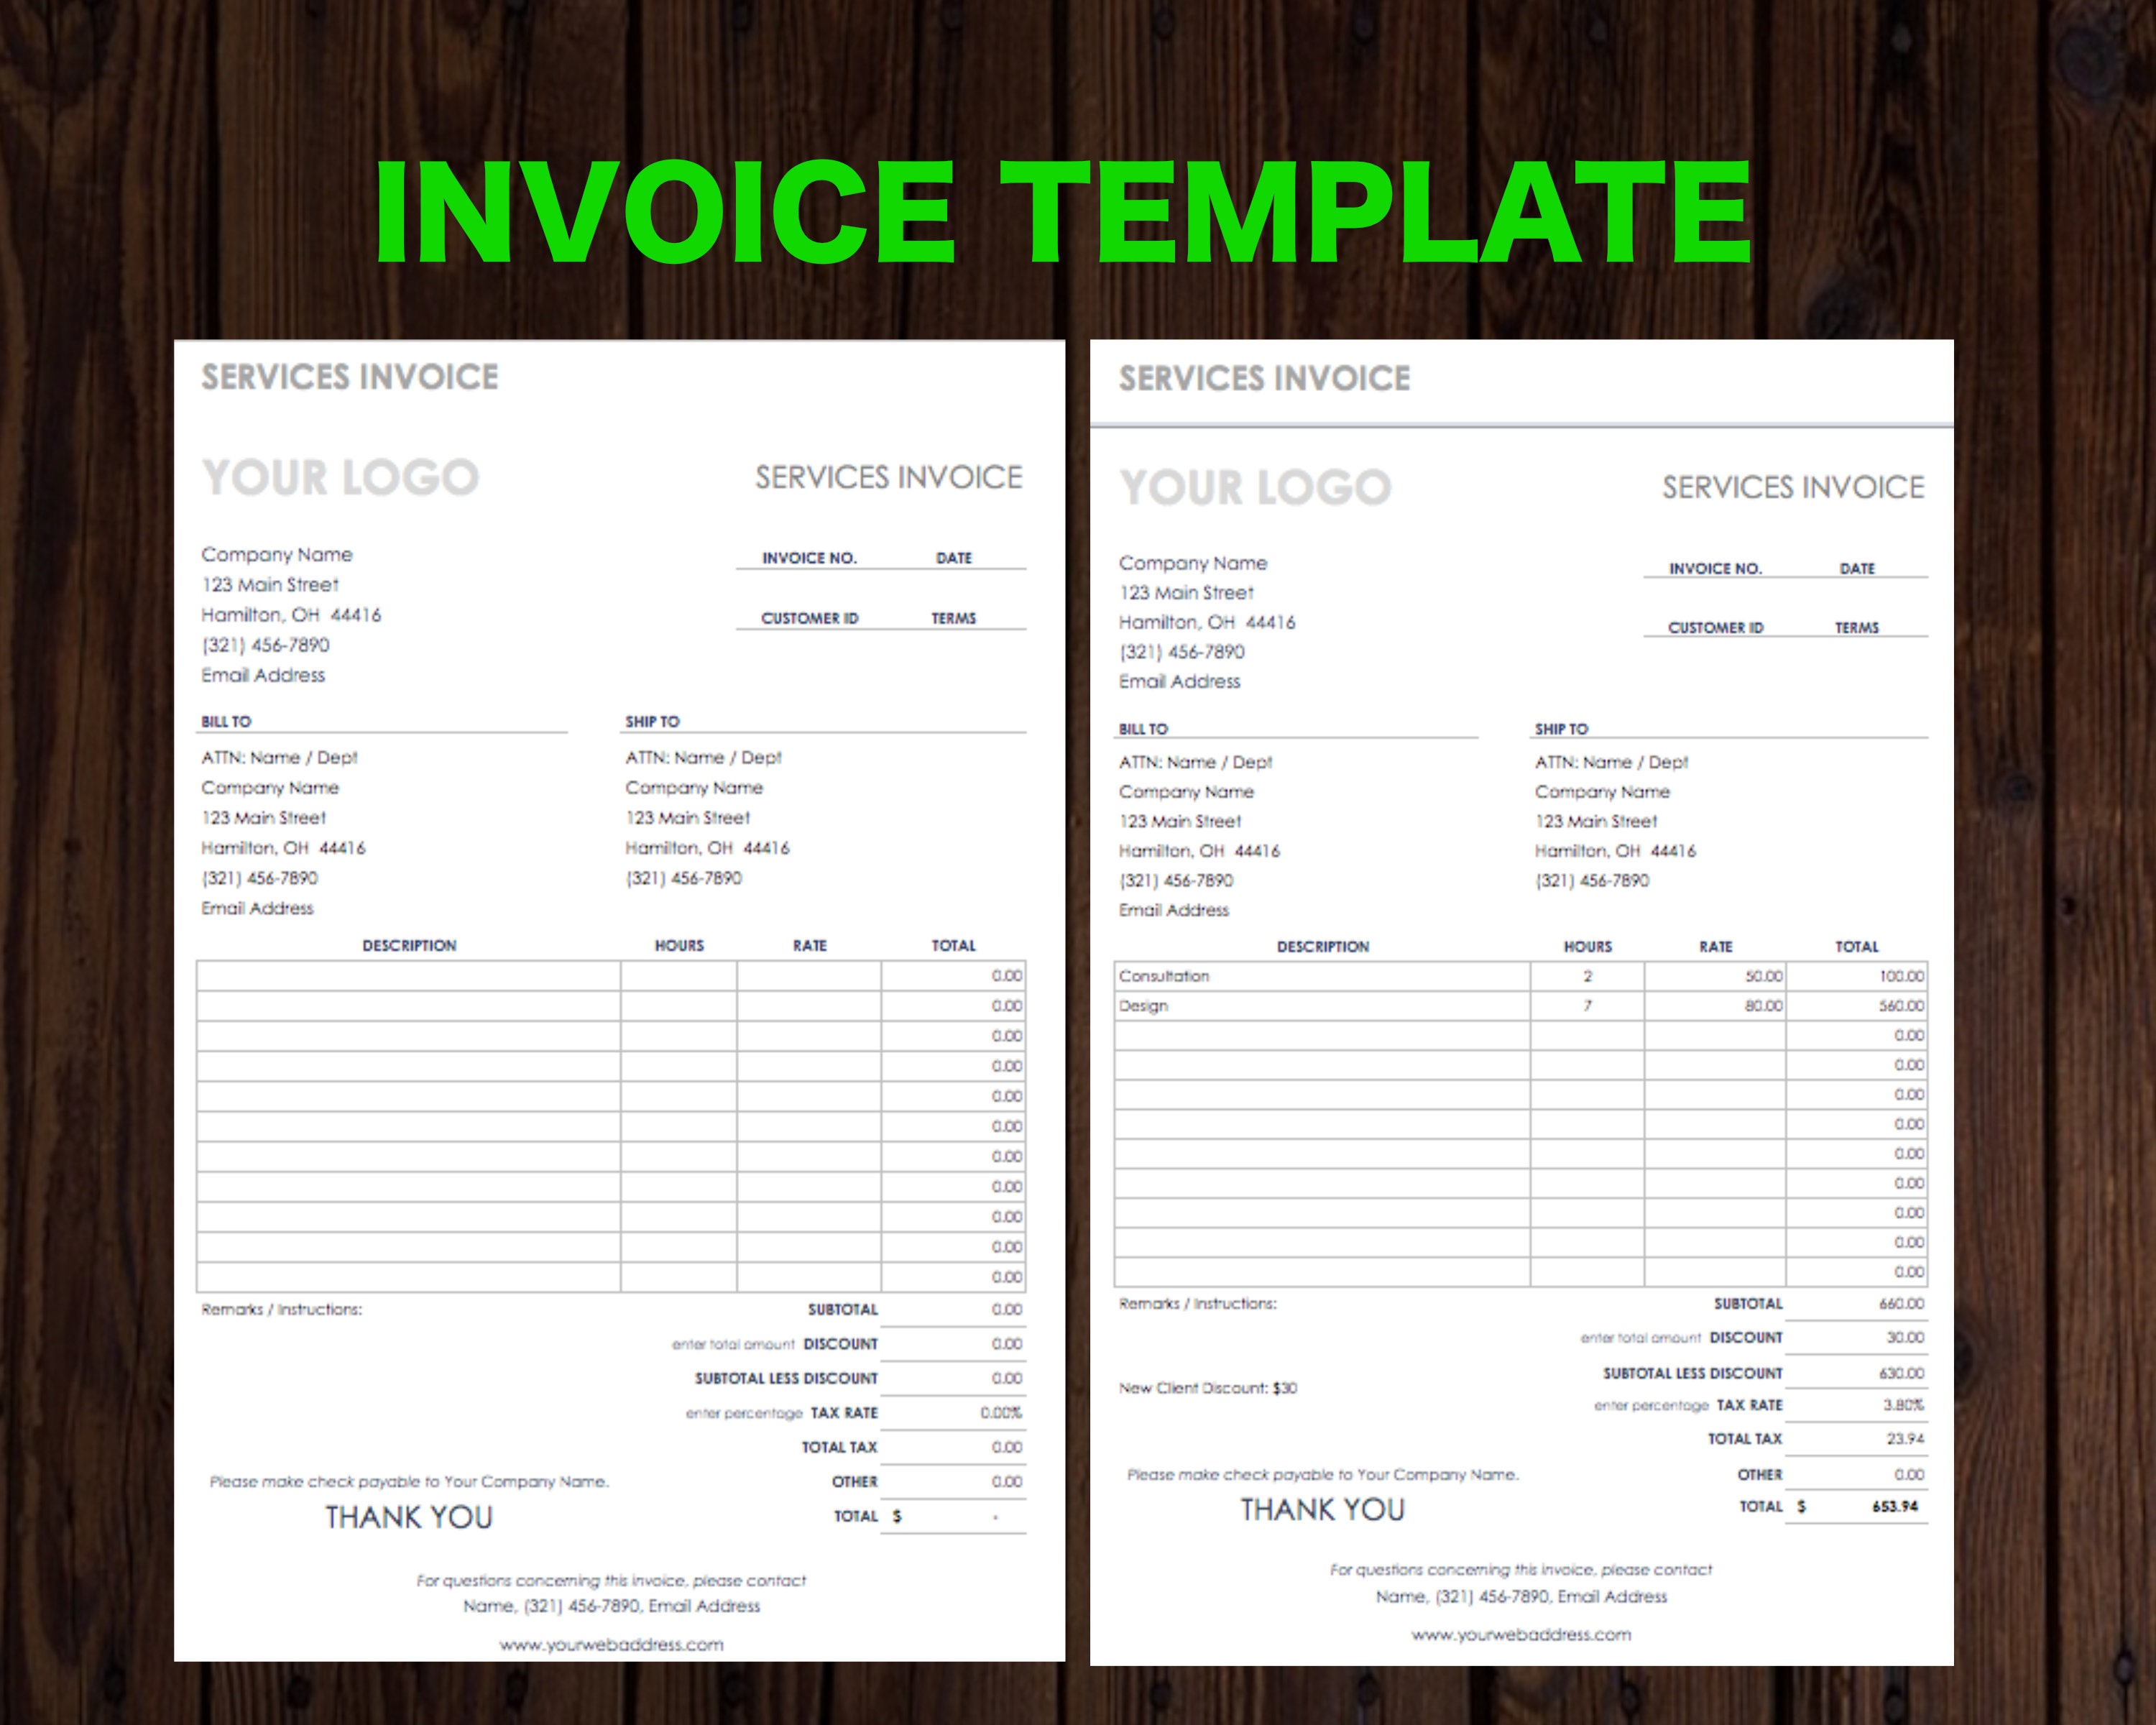 Printable Invoice Template Receipt Billing Statement Blank Etsy